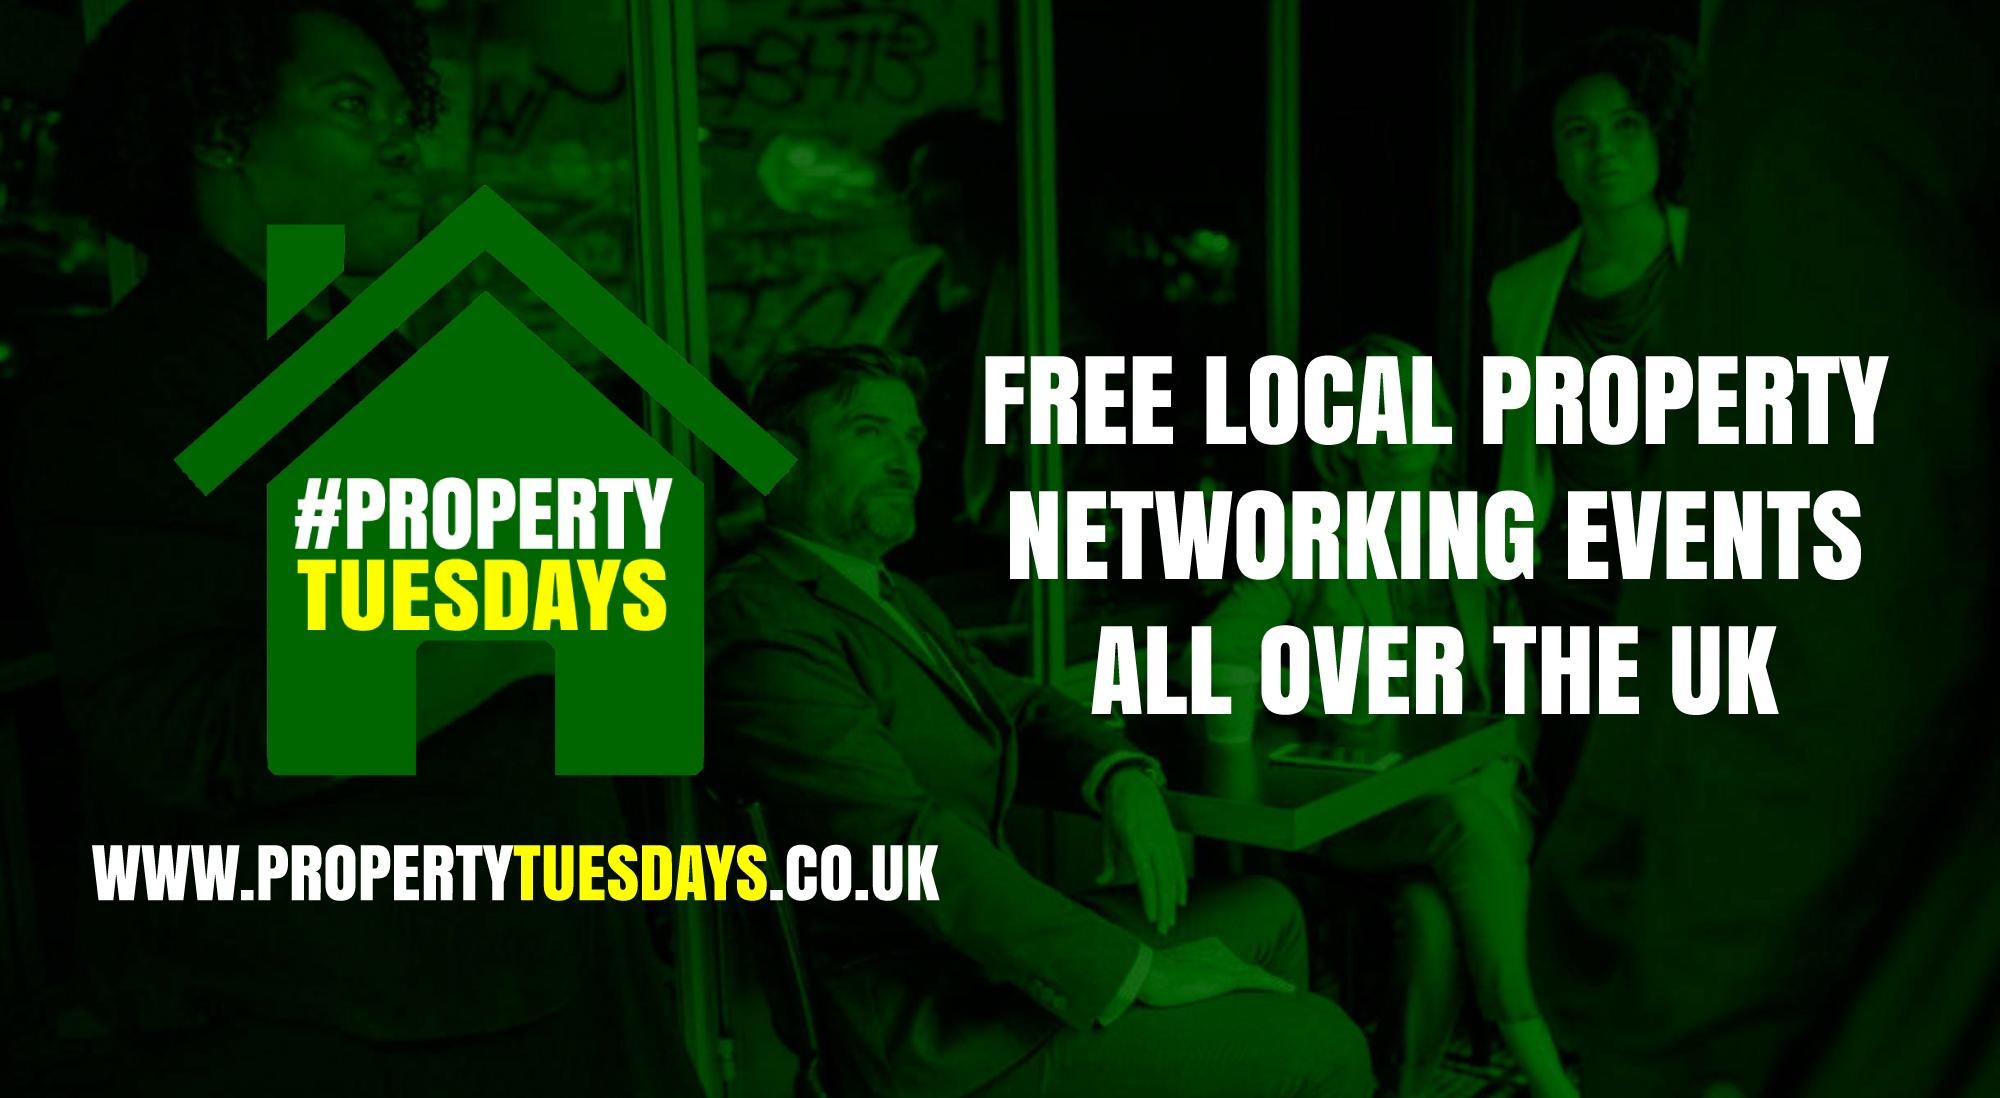 Property Tuesdays! Free property networking event in Camden